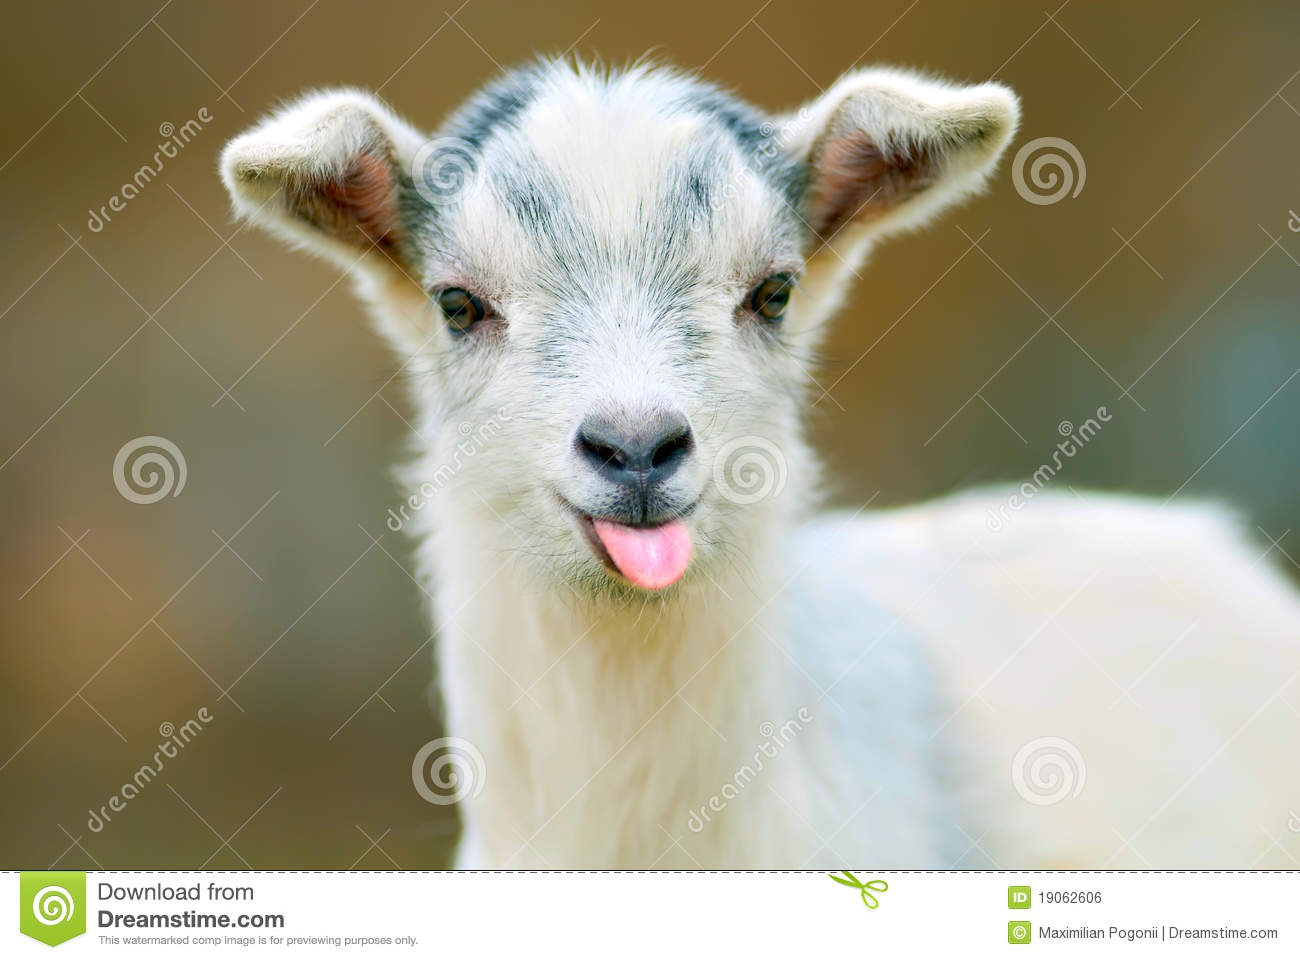 13 849 Funny Goat Photos Free Royalty Free Stock Photos From Dreamstime